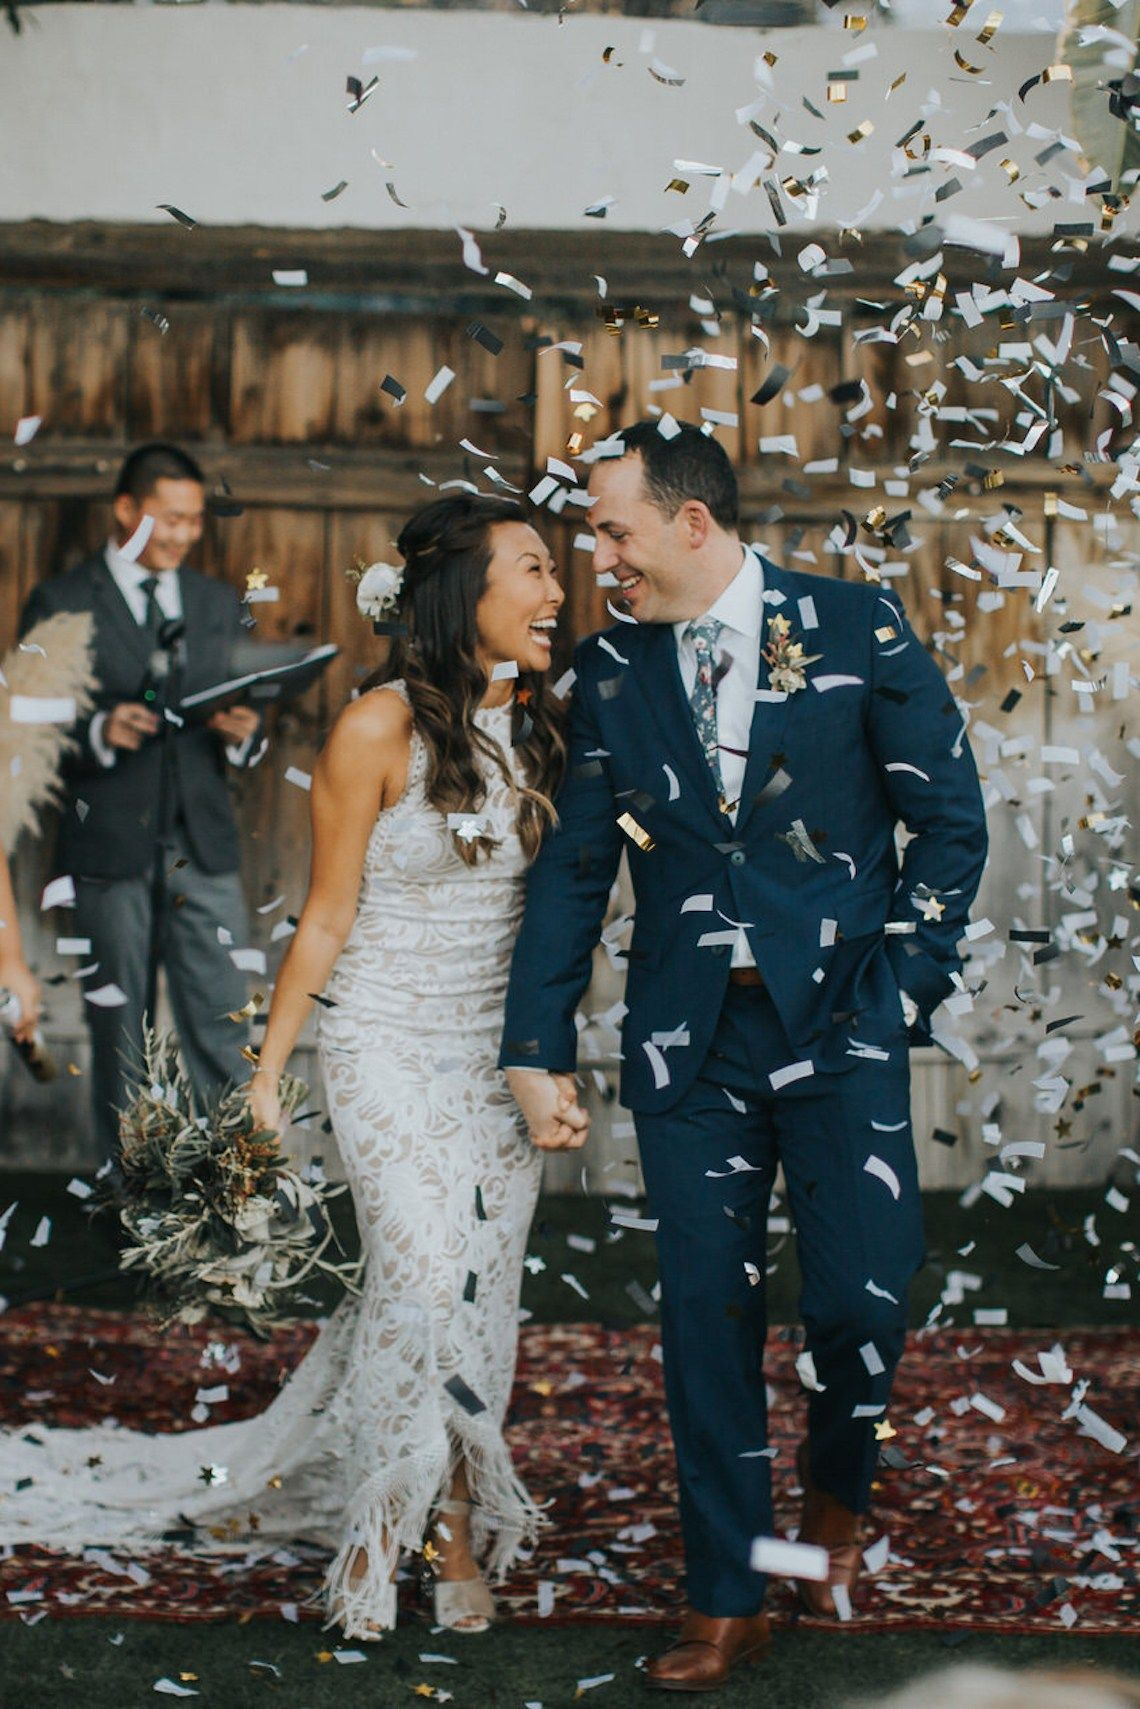 Happy New Year from Bridal Musings! Let's start wedding